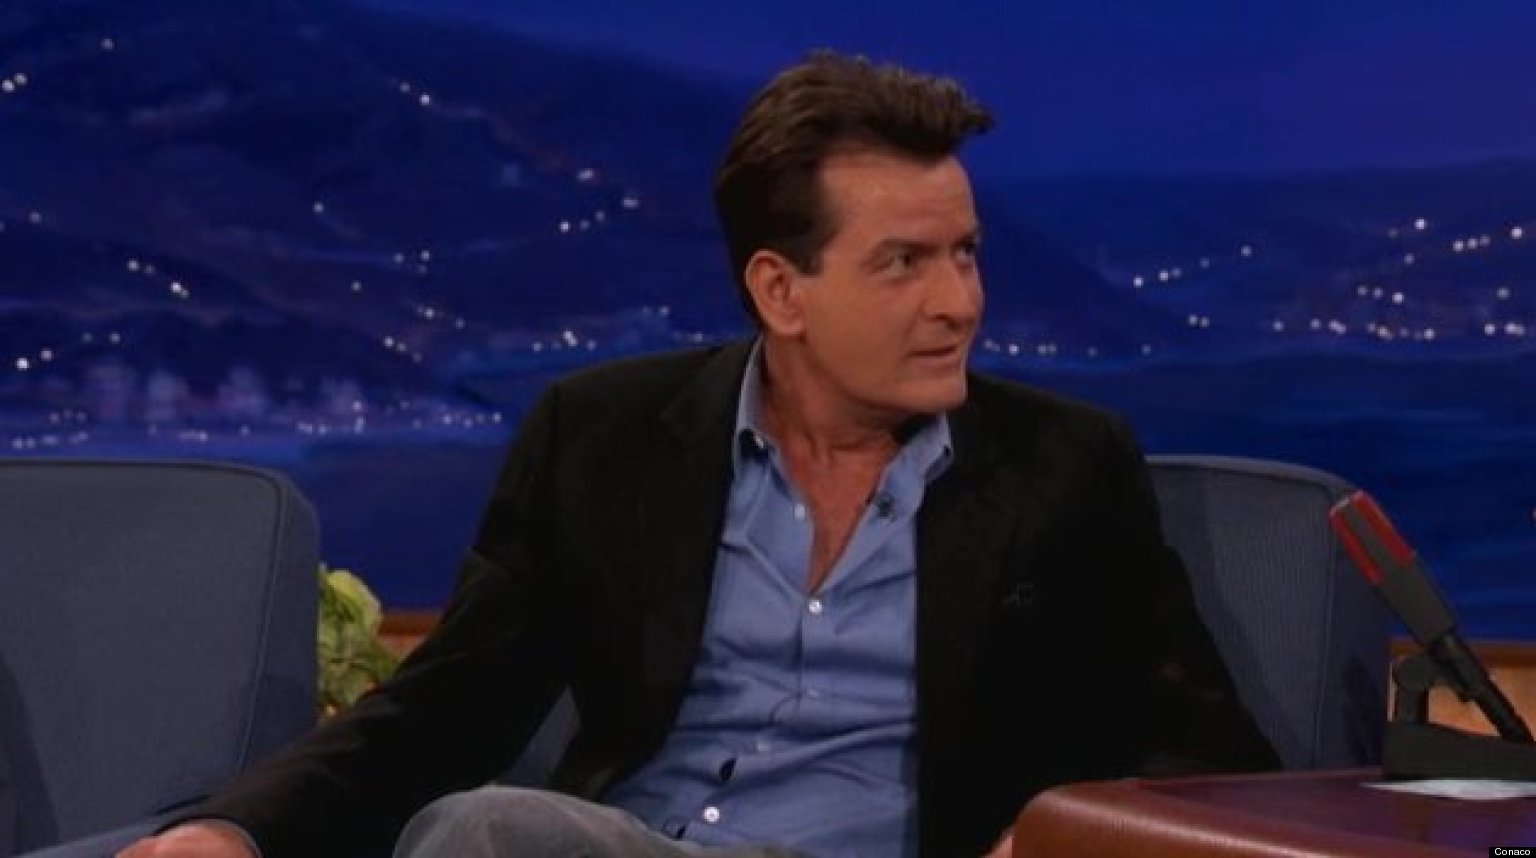 WATCH: Charlie Sheen Blames Dave Chappelle For Meltdown